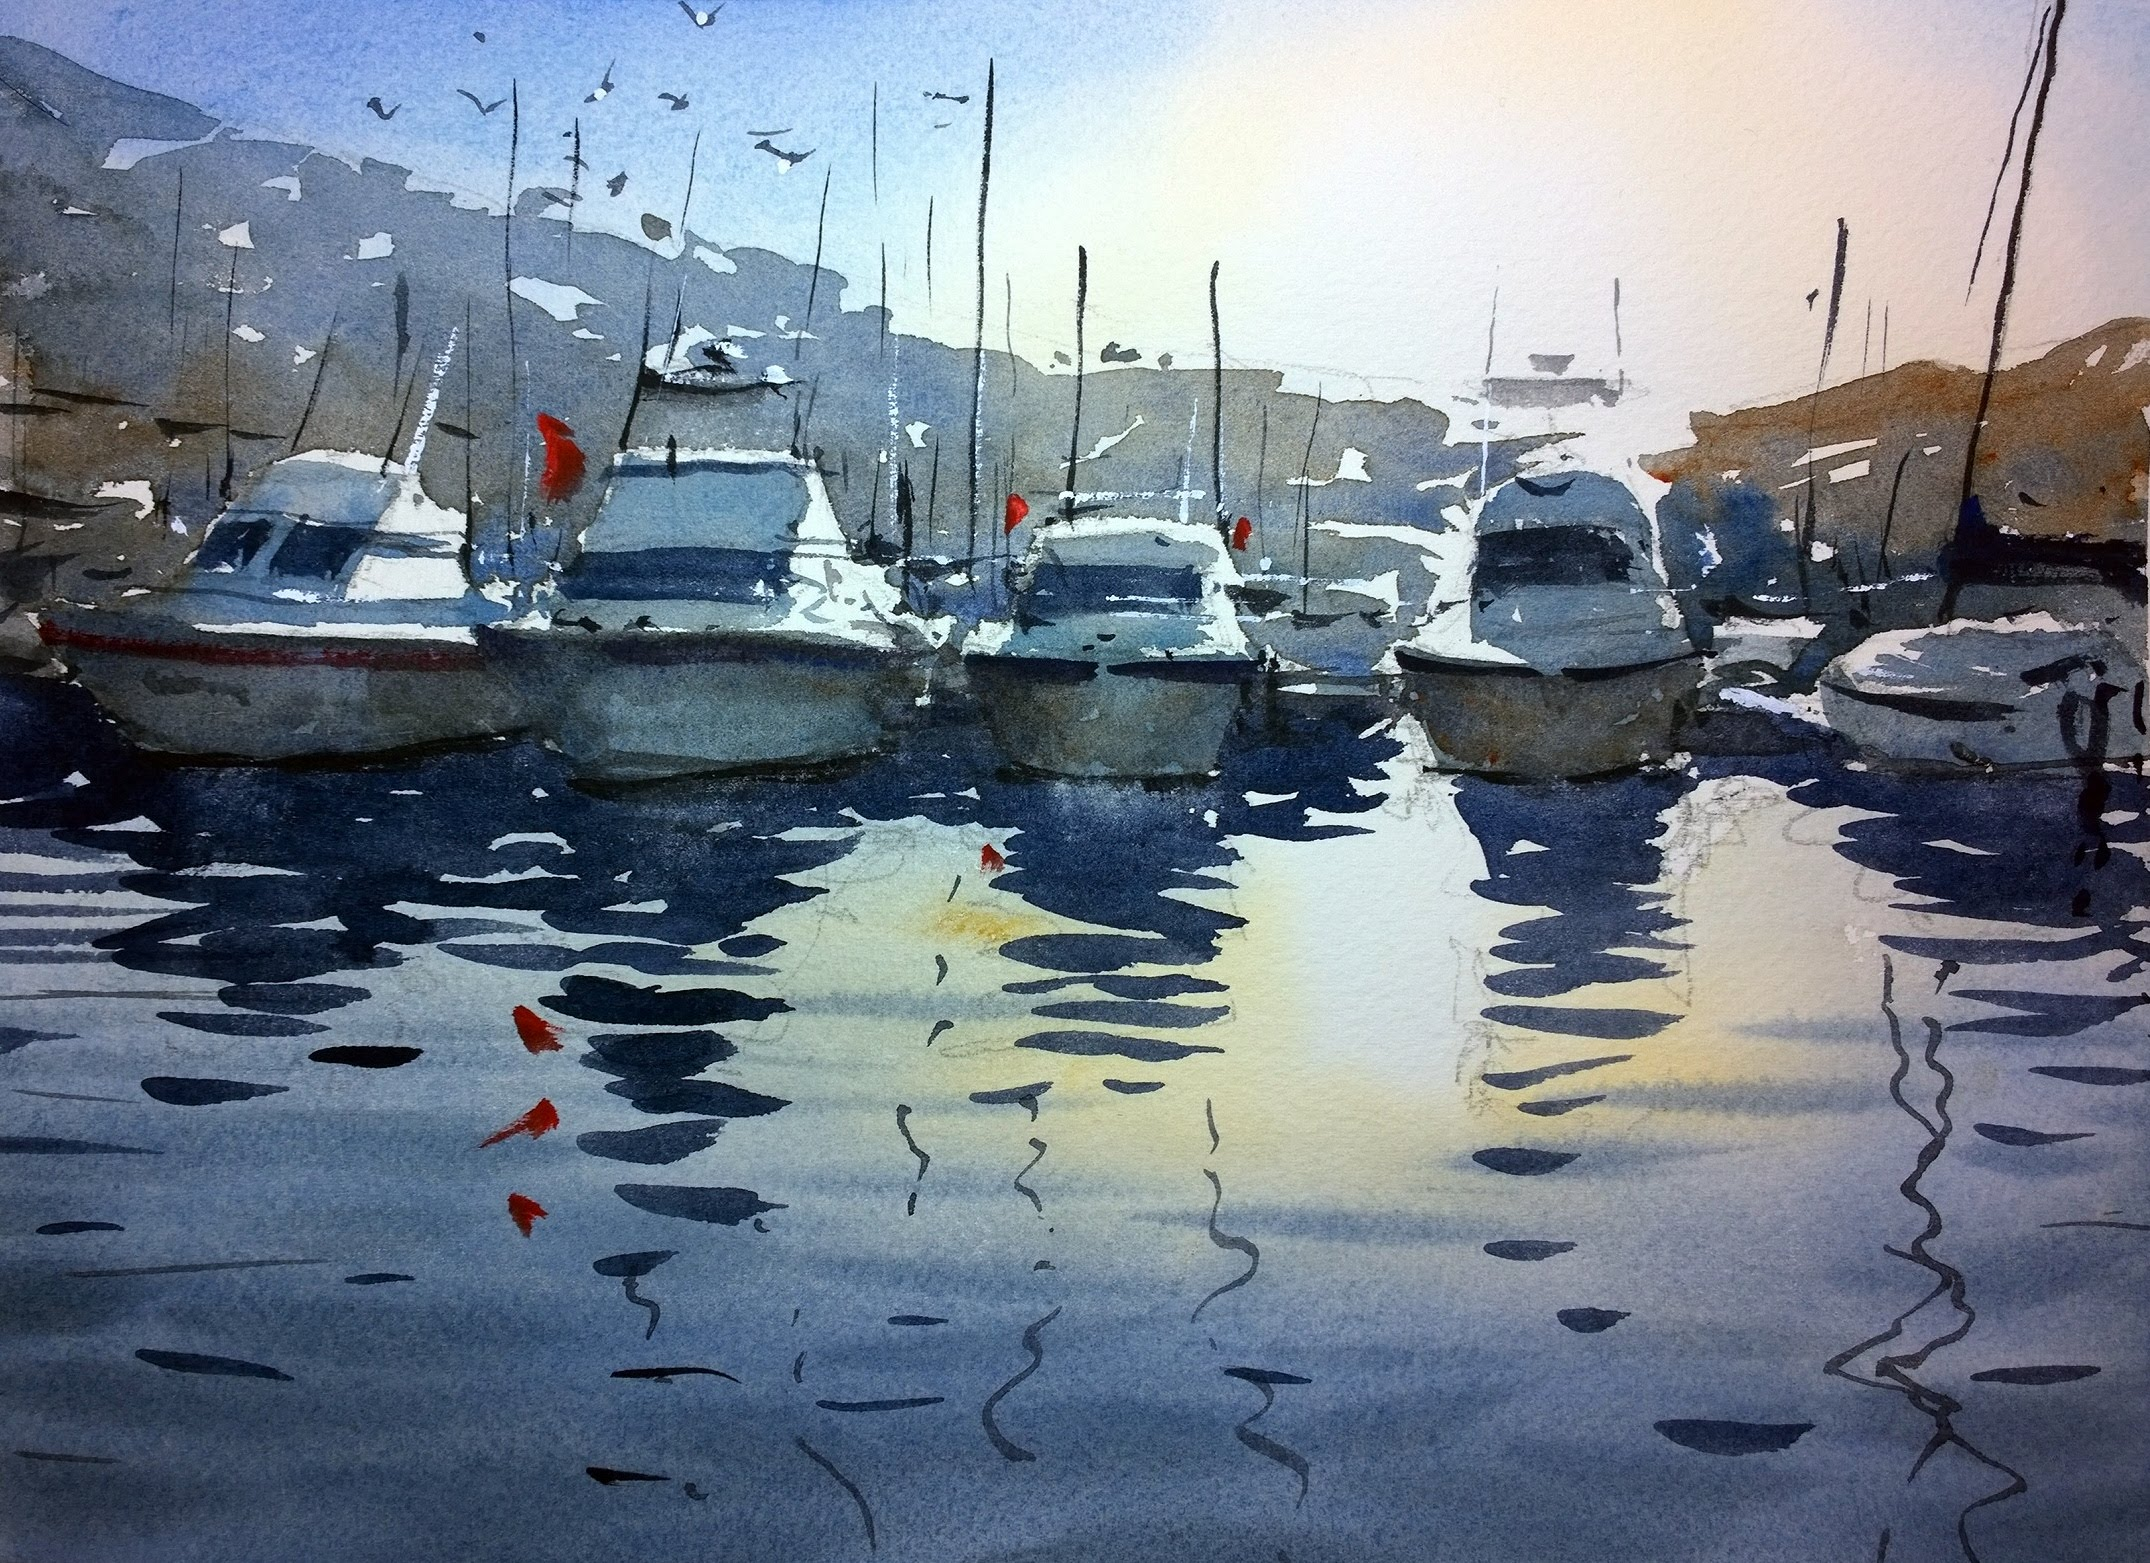 Watercolour demonstration - How to paint boats, water and ...